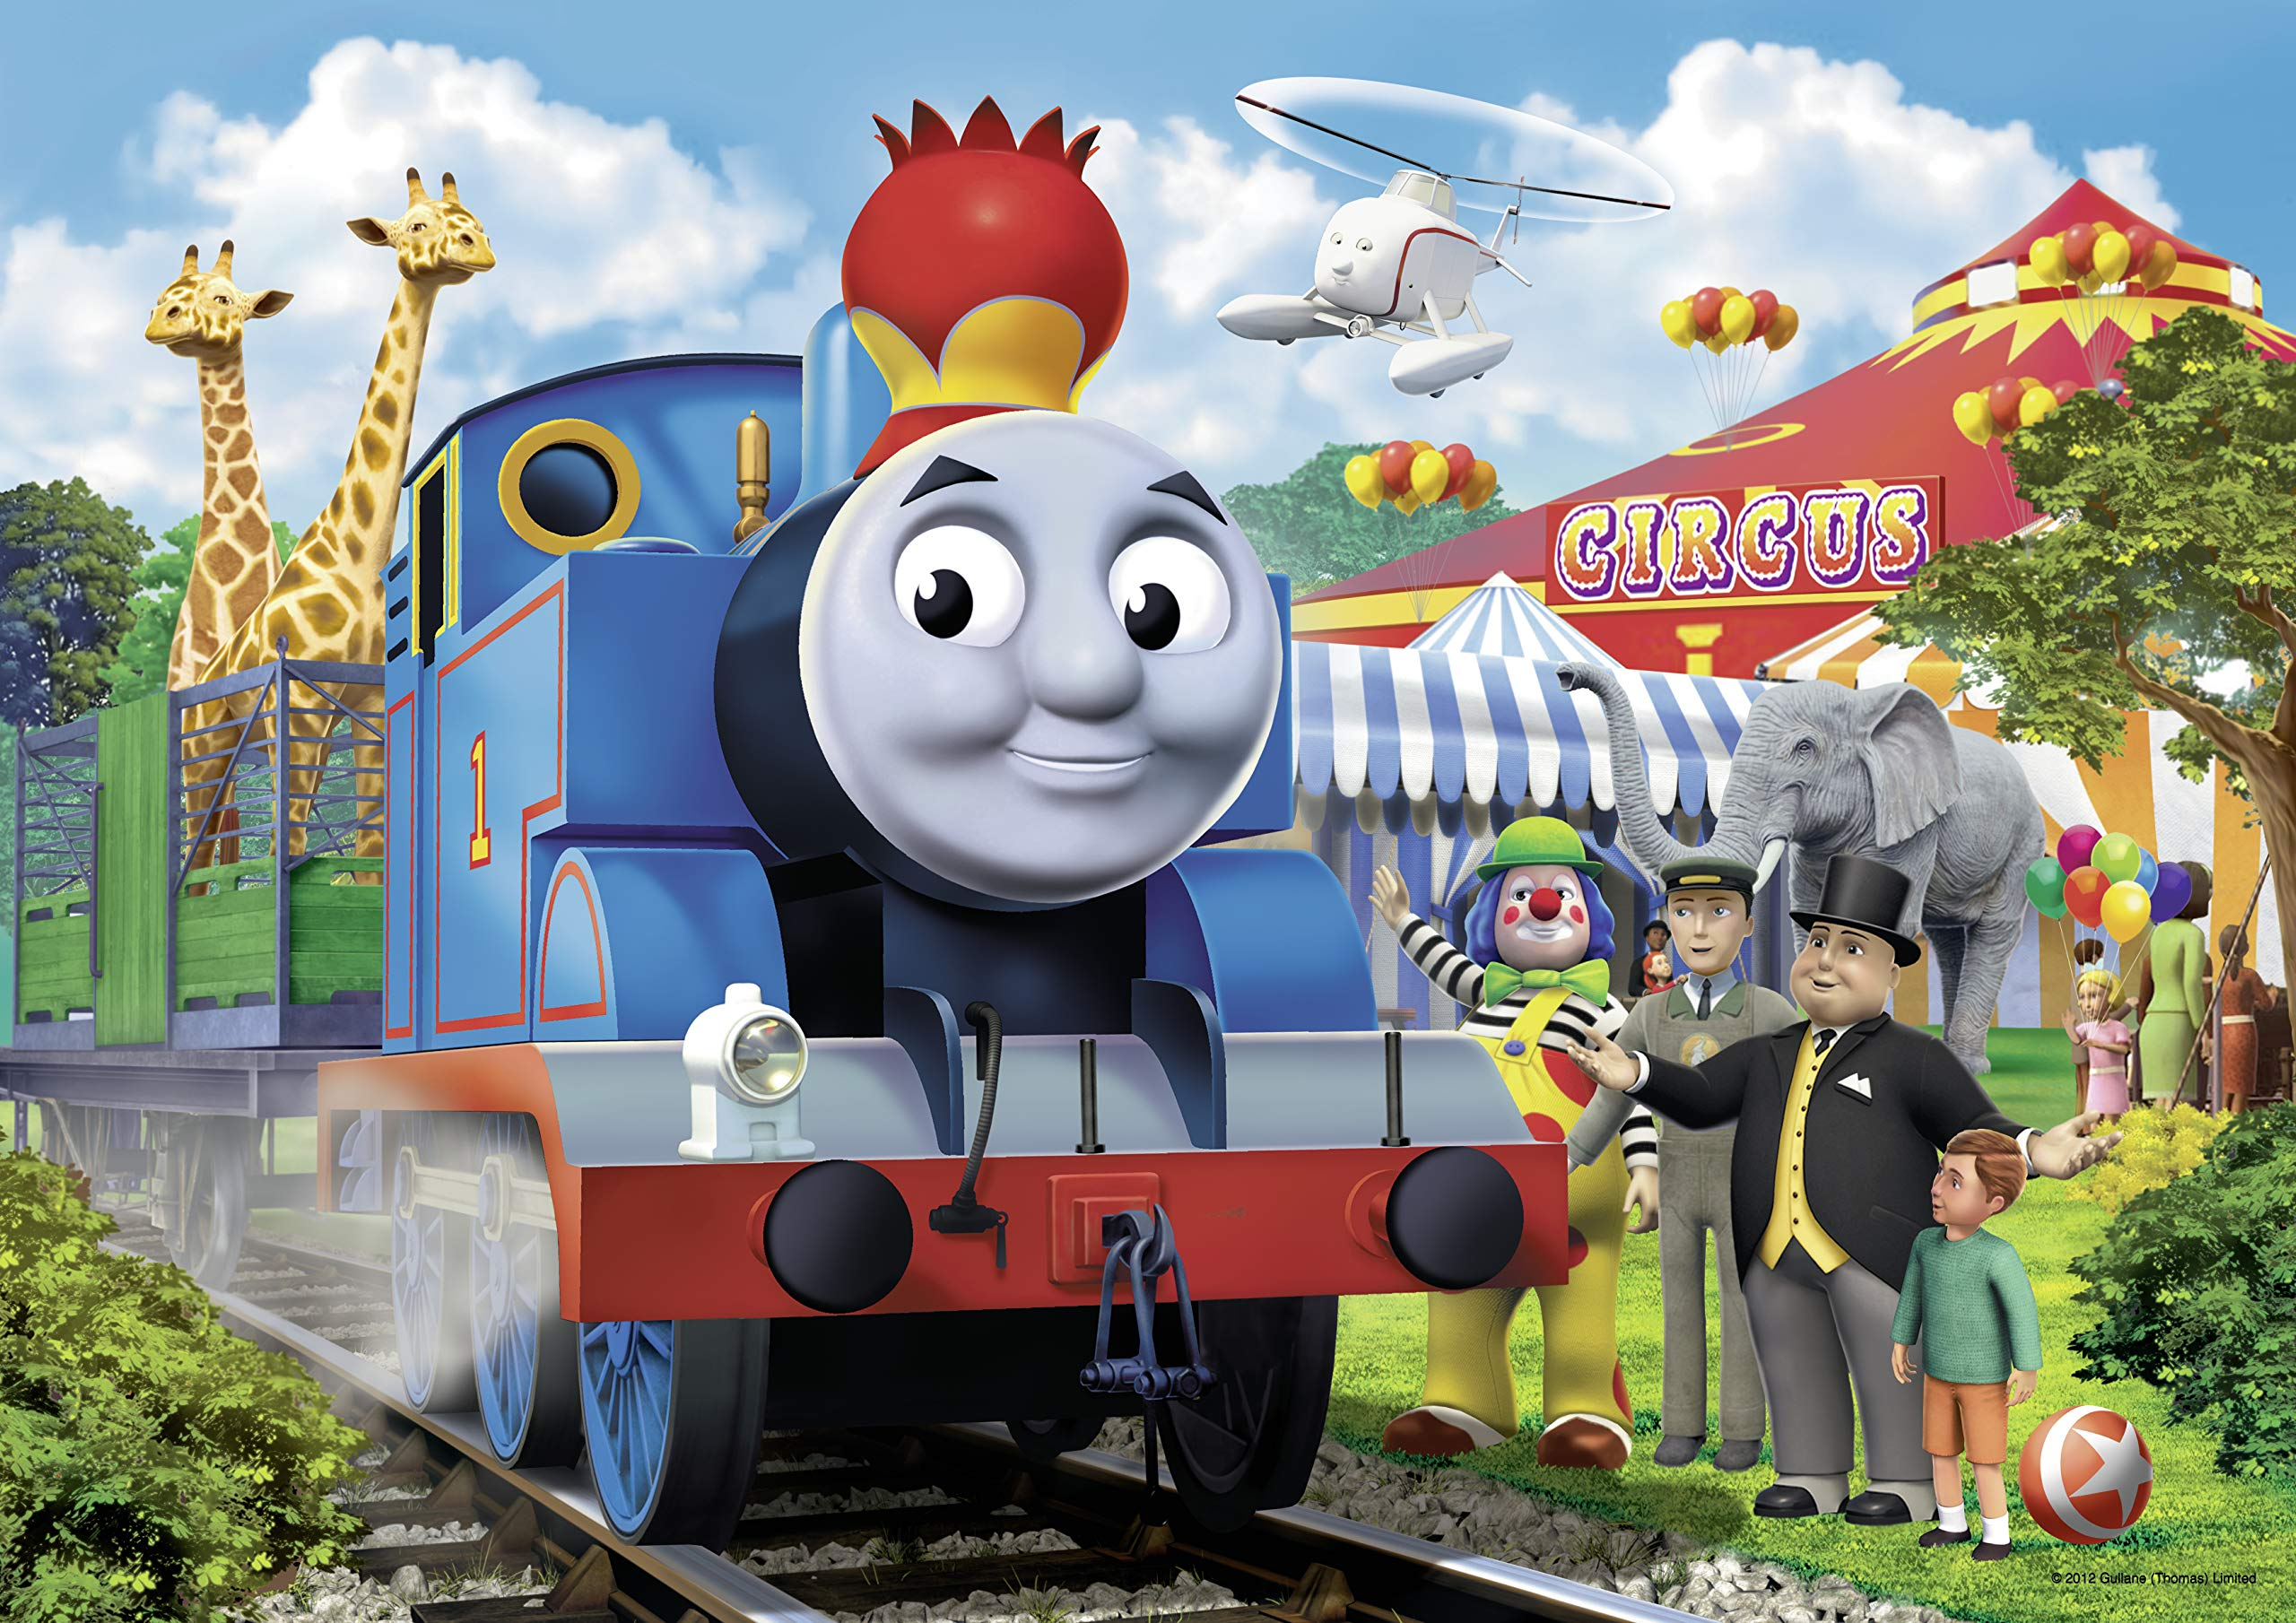 Ravensburger Thomas & Friends Circus Fun Floor Puzzle in a Suitcase Box, 24-Piece Jigsaw Puzzle for Kids – Every Piece is Unique, Pieces Fit Together Perfectly